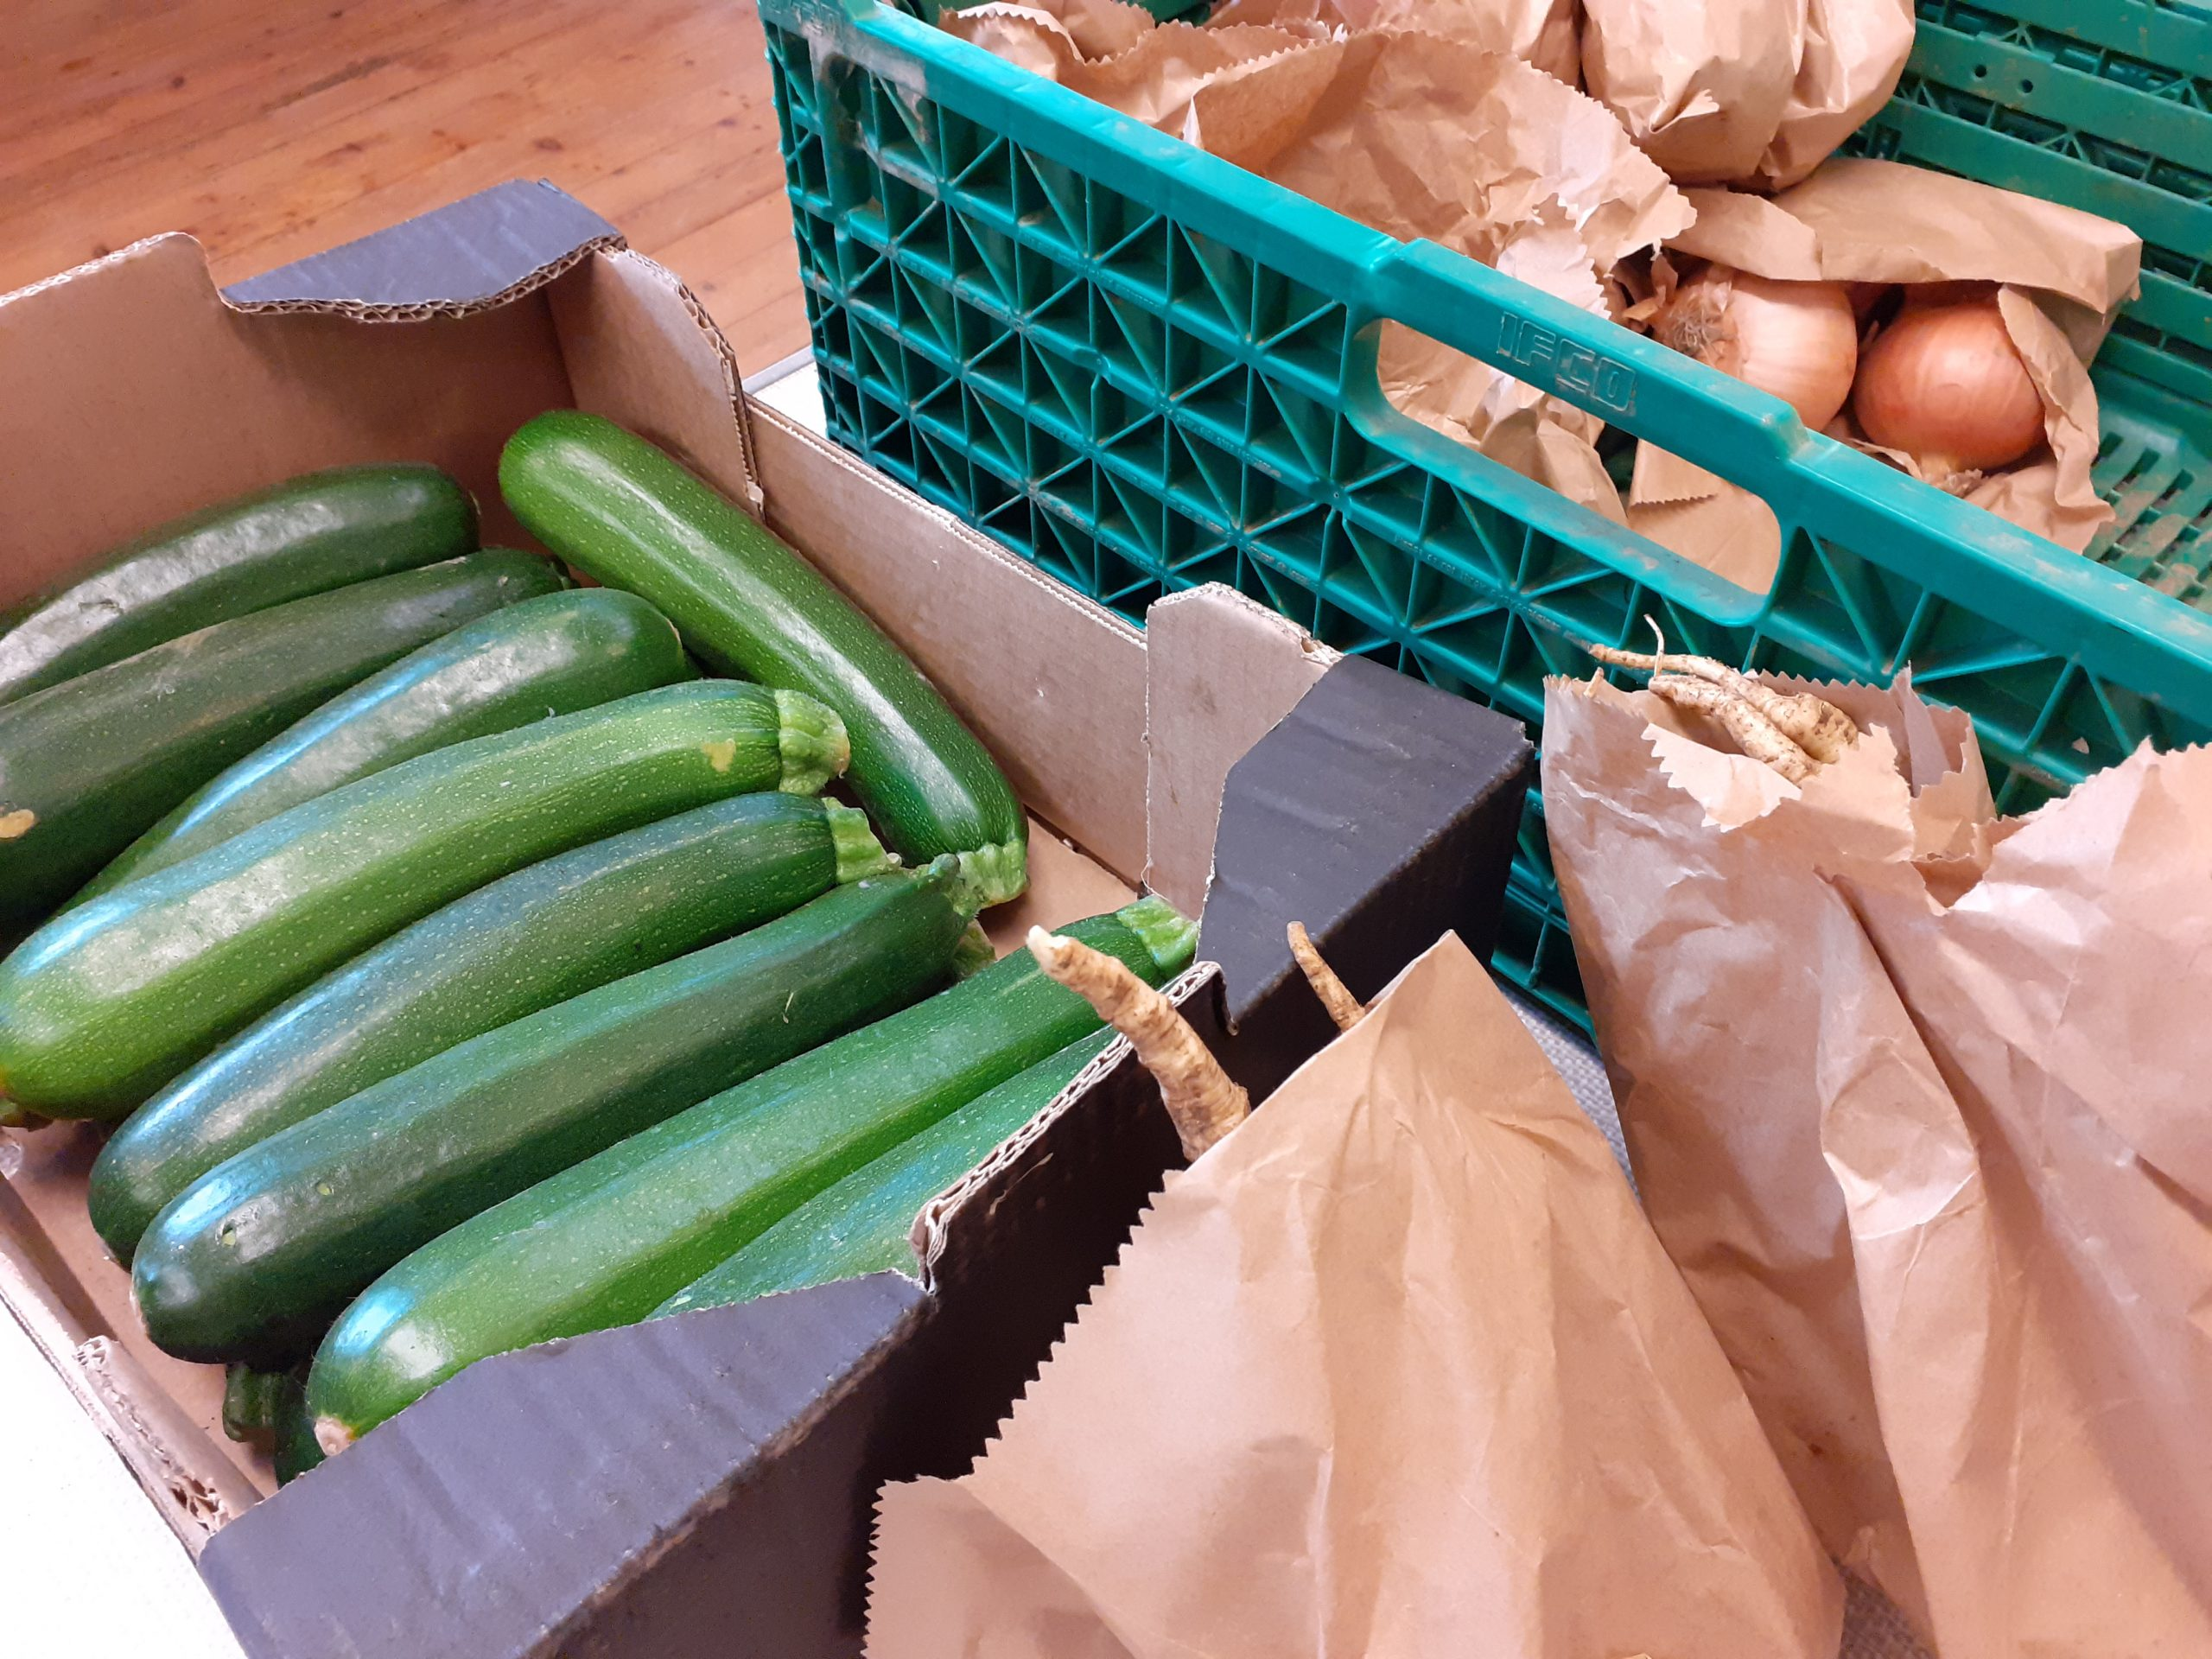 Courgettes and other veg